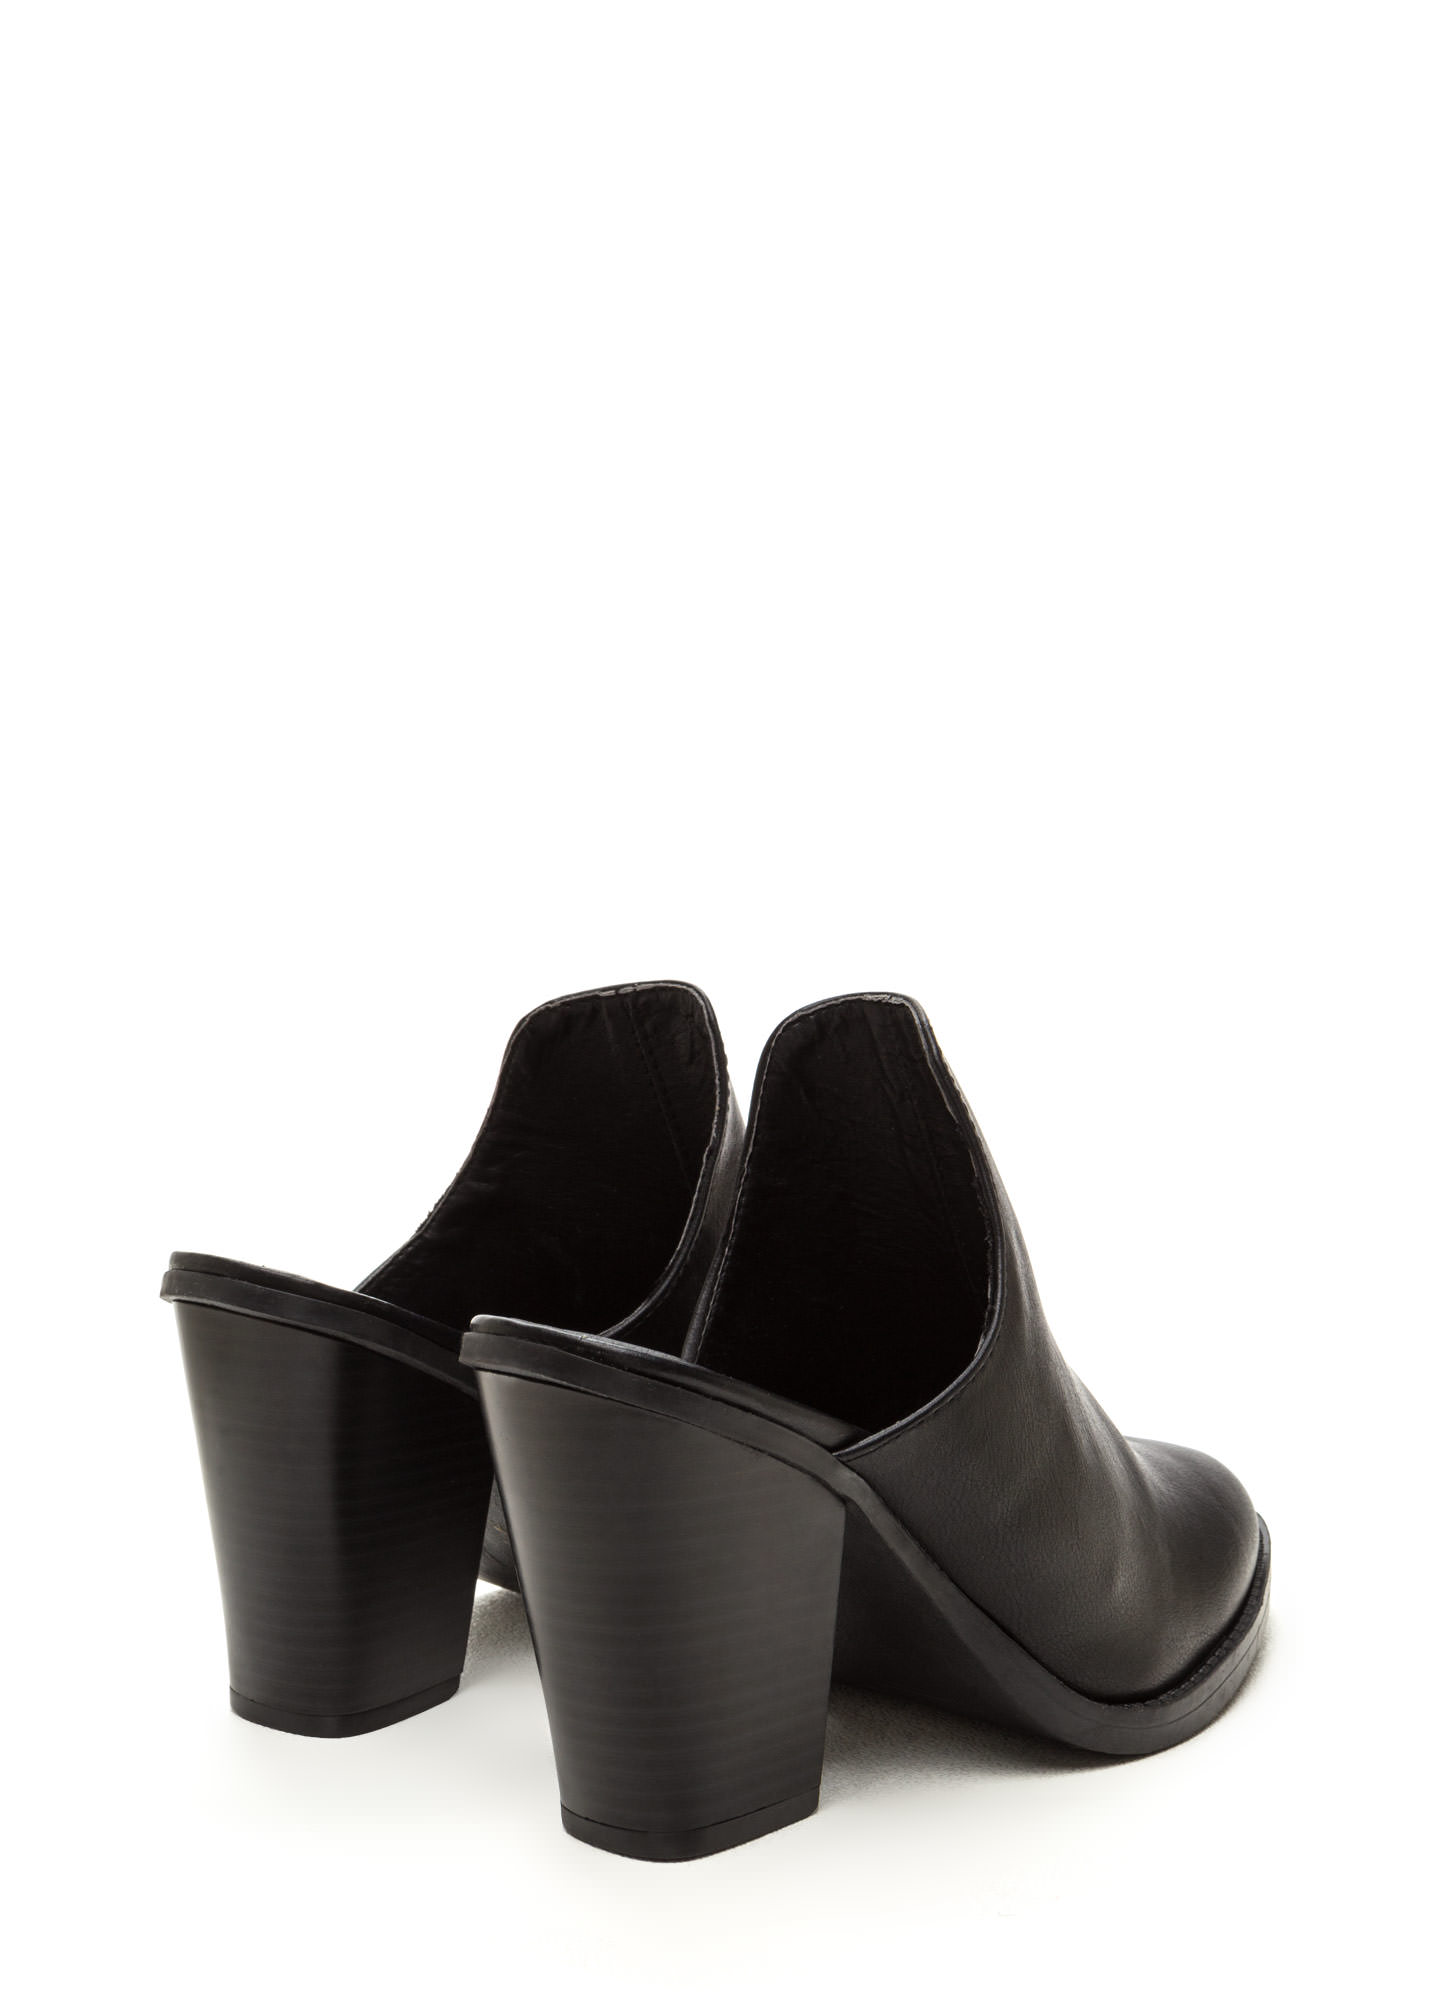 Case In Point Chunky Mule Heels BLACK